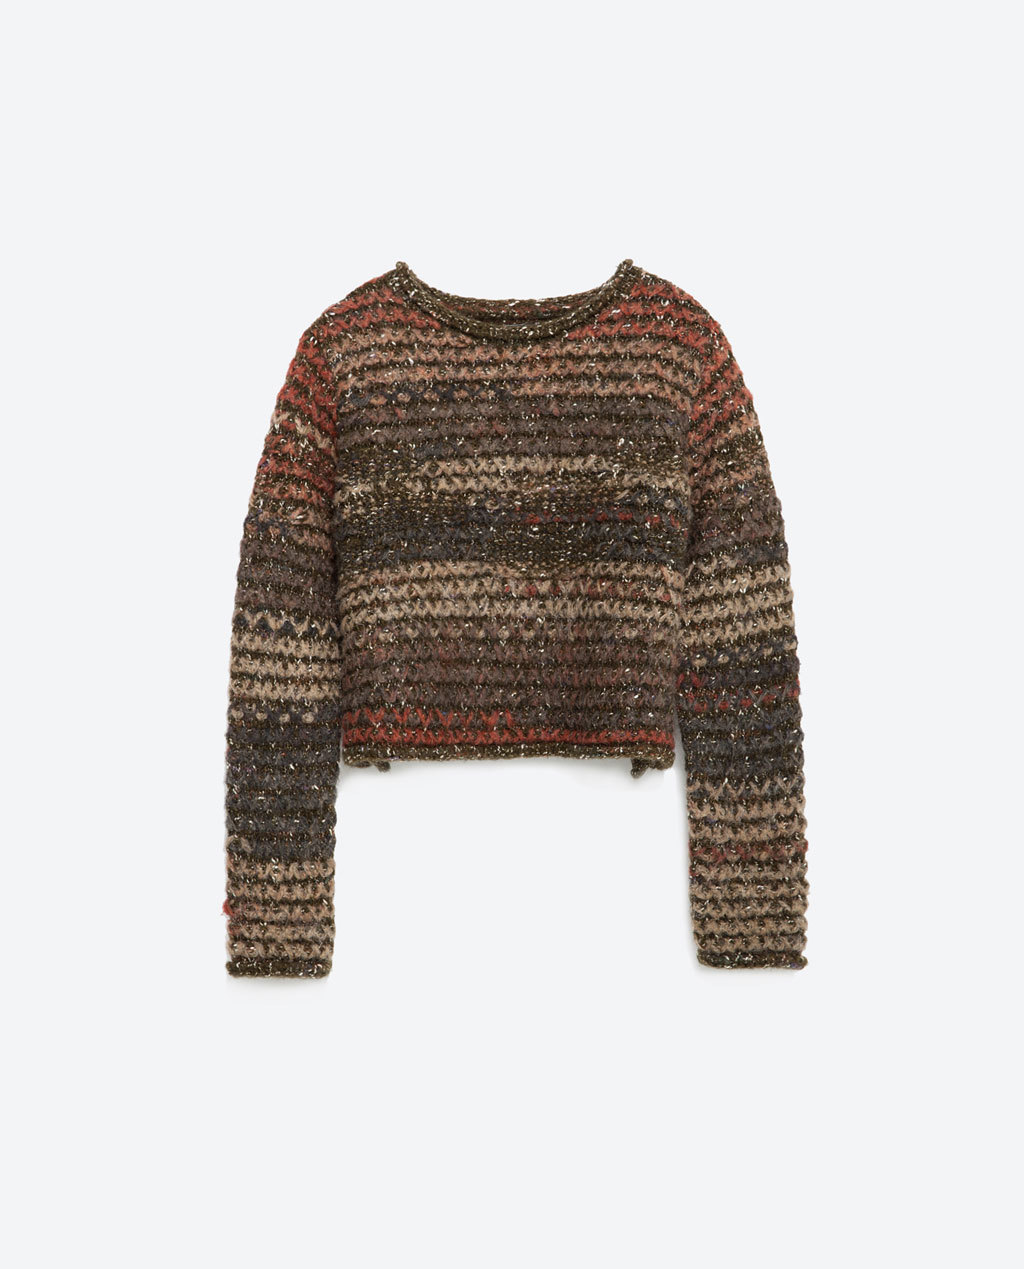 Round Neck Sweater - neckline: round neck; pattern: horizontal stripes; length: cropped; style: standard; secondary colour: chocolate brown; predominant colour: stone; occasions: casual, creative work; fibres: acrylic - 100%; fit: standard fit; sleeve length: long sleeve; sleeve style: standard; texture group: knits/crochet; pattern type: knitted - other; pattern size: standard; season: a/w 2015; wardrobe: highlight